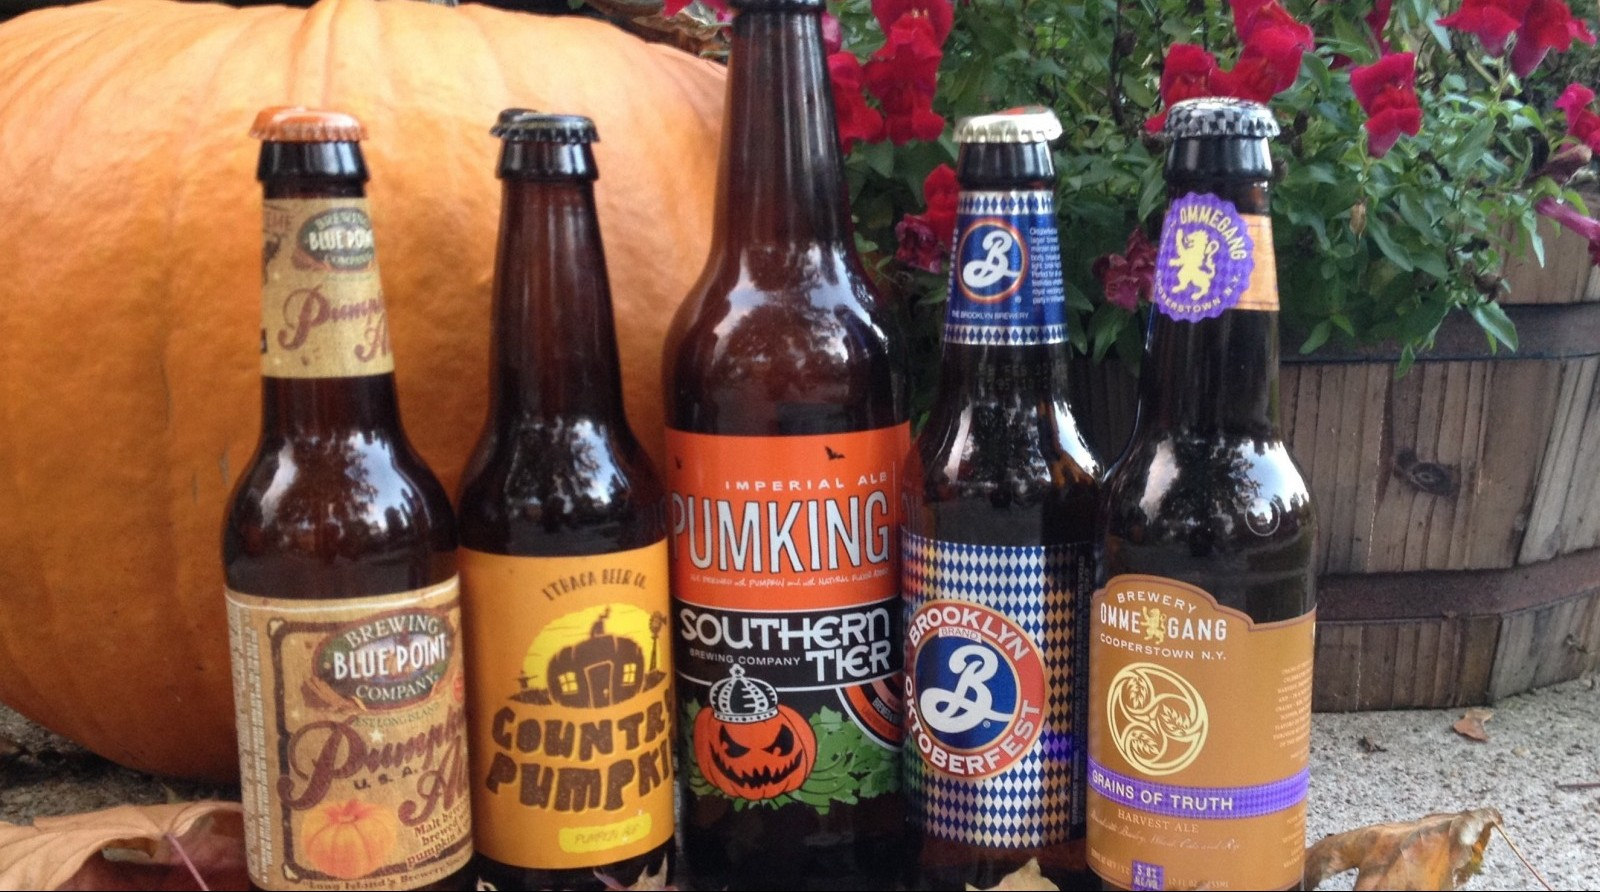 Reaching across New York for five fall beers